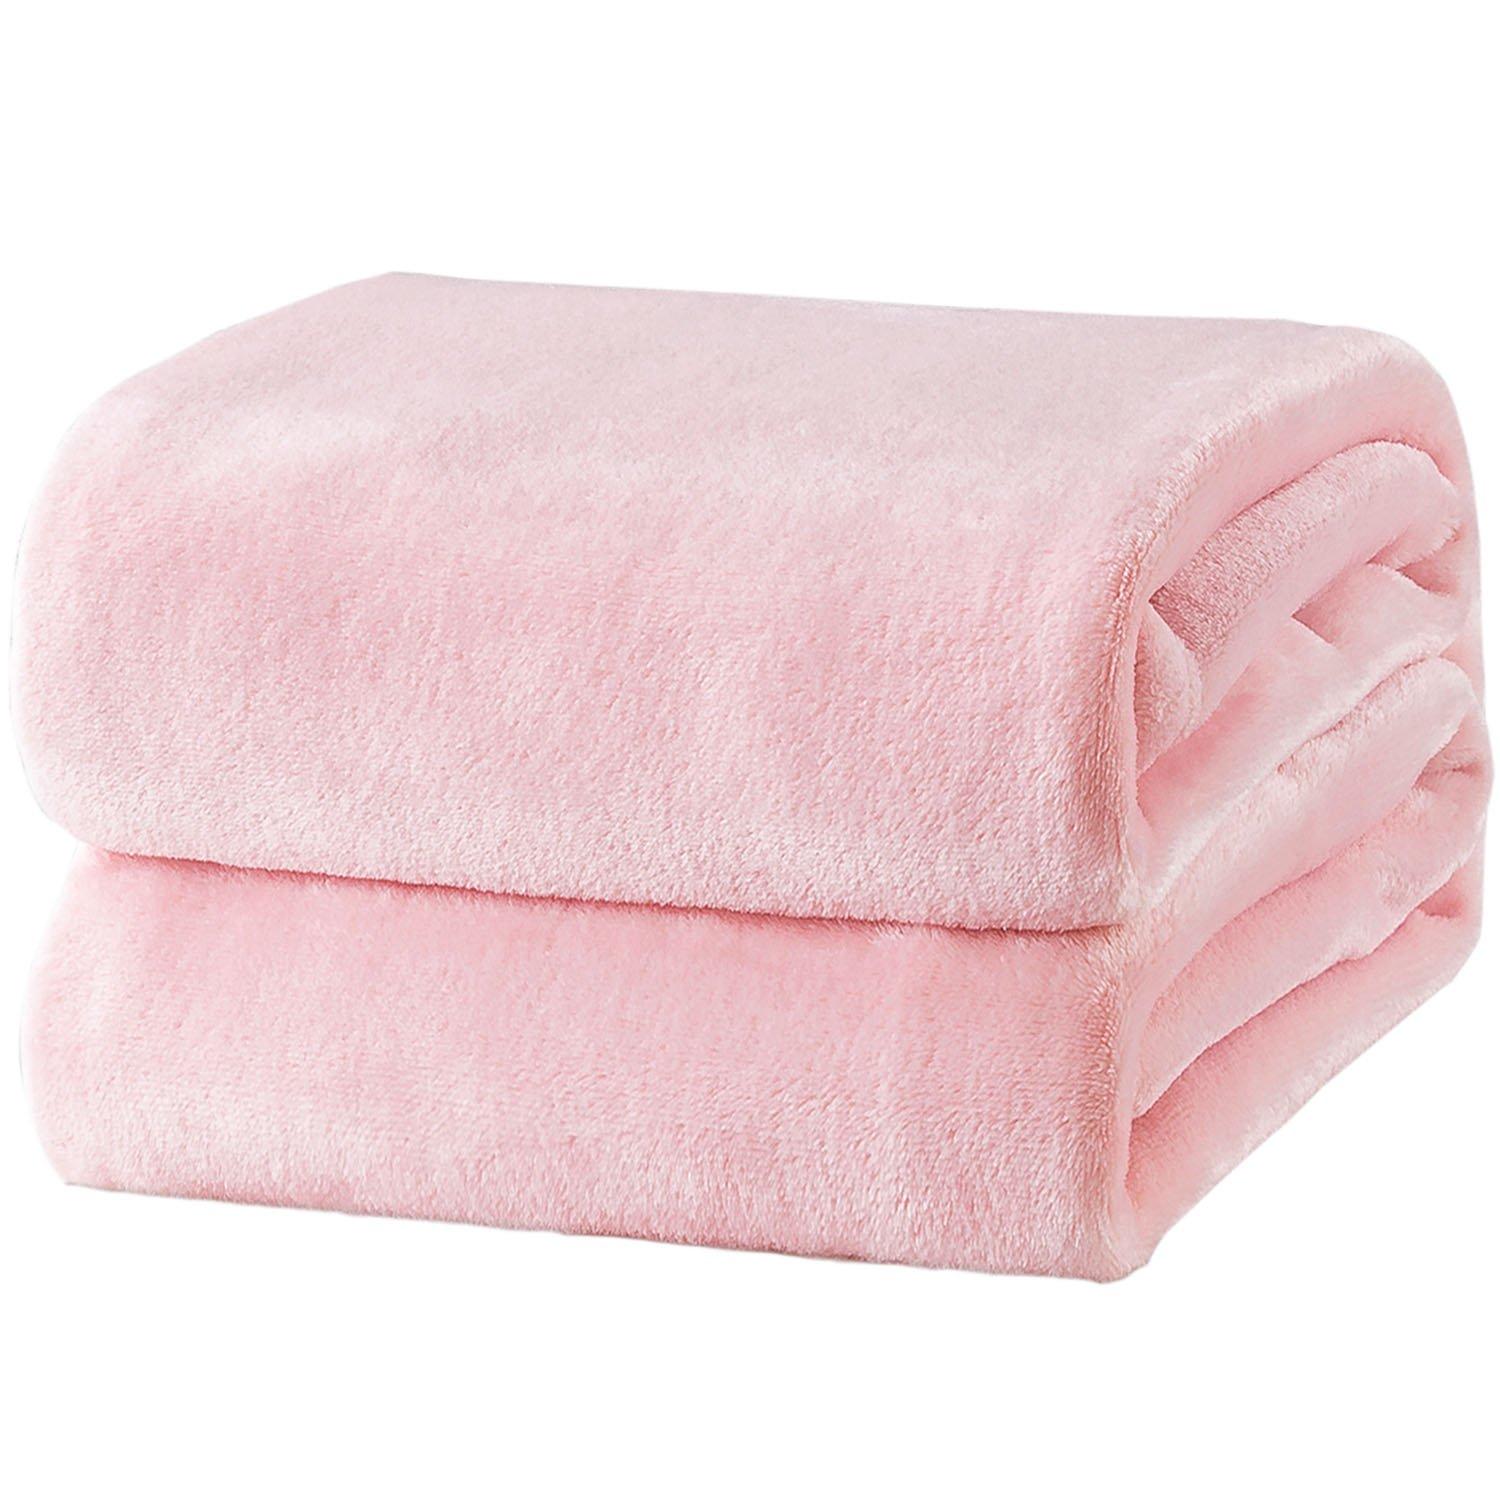 Bedsure Fleece Blanket Queen Size Pink Lightweight Super Soft Cozy Luxury Bed Blanket Microfiber by Bedsure